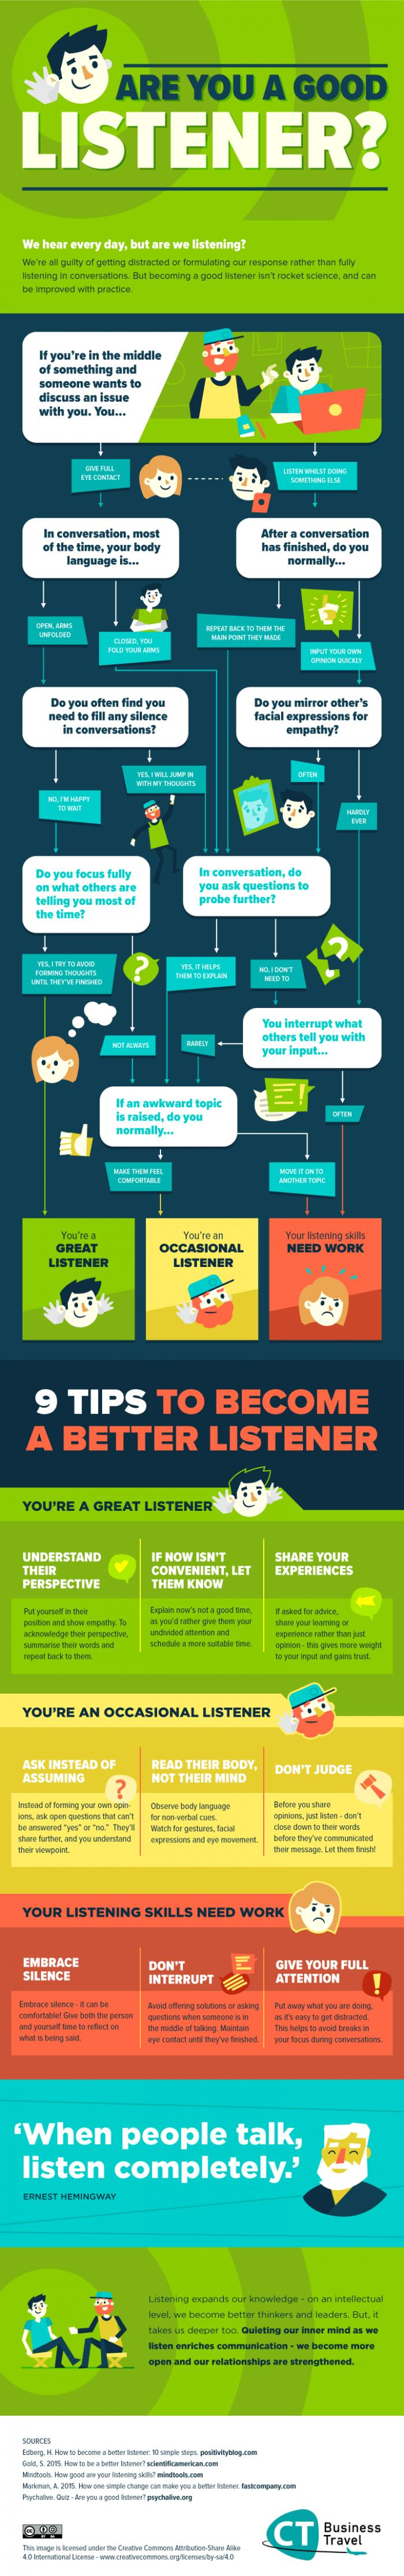 are-you-a-good-listener